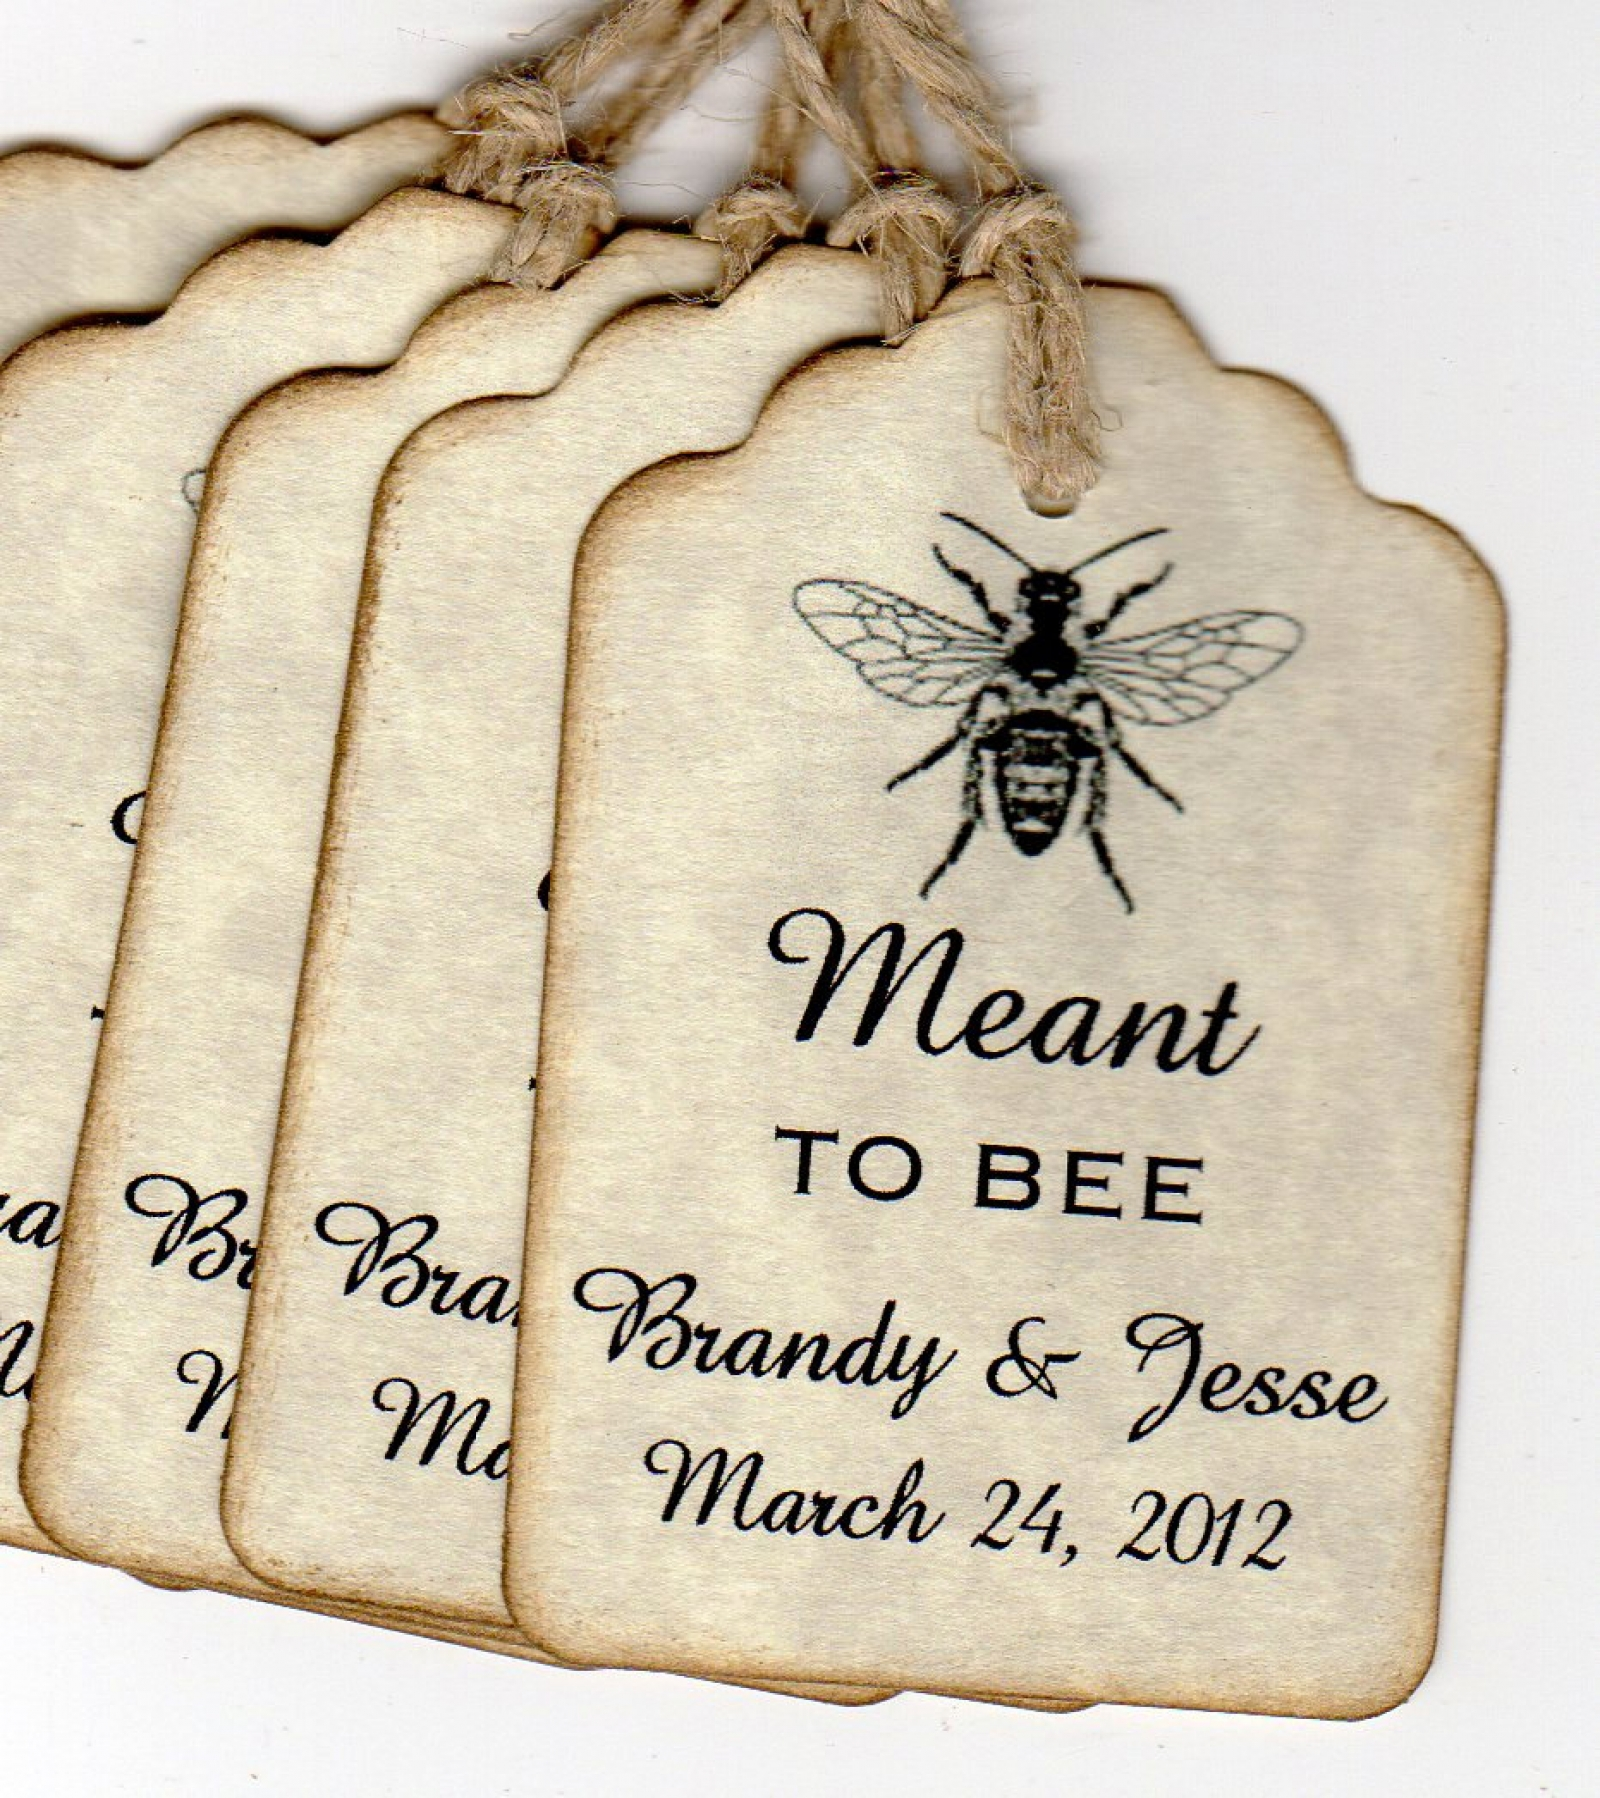 50 Vintage Wedding Favor Tags Wedding Gift Tags Wedding Wish Tags ...